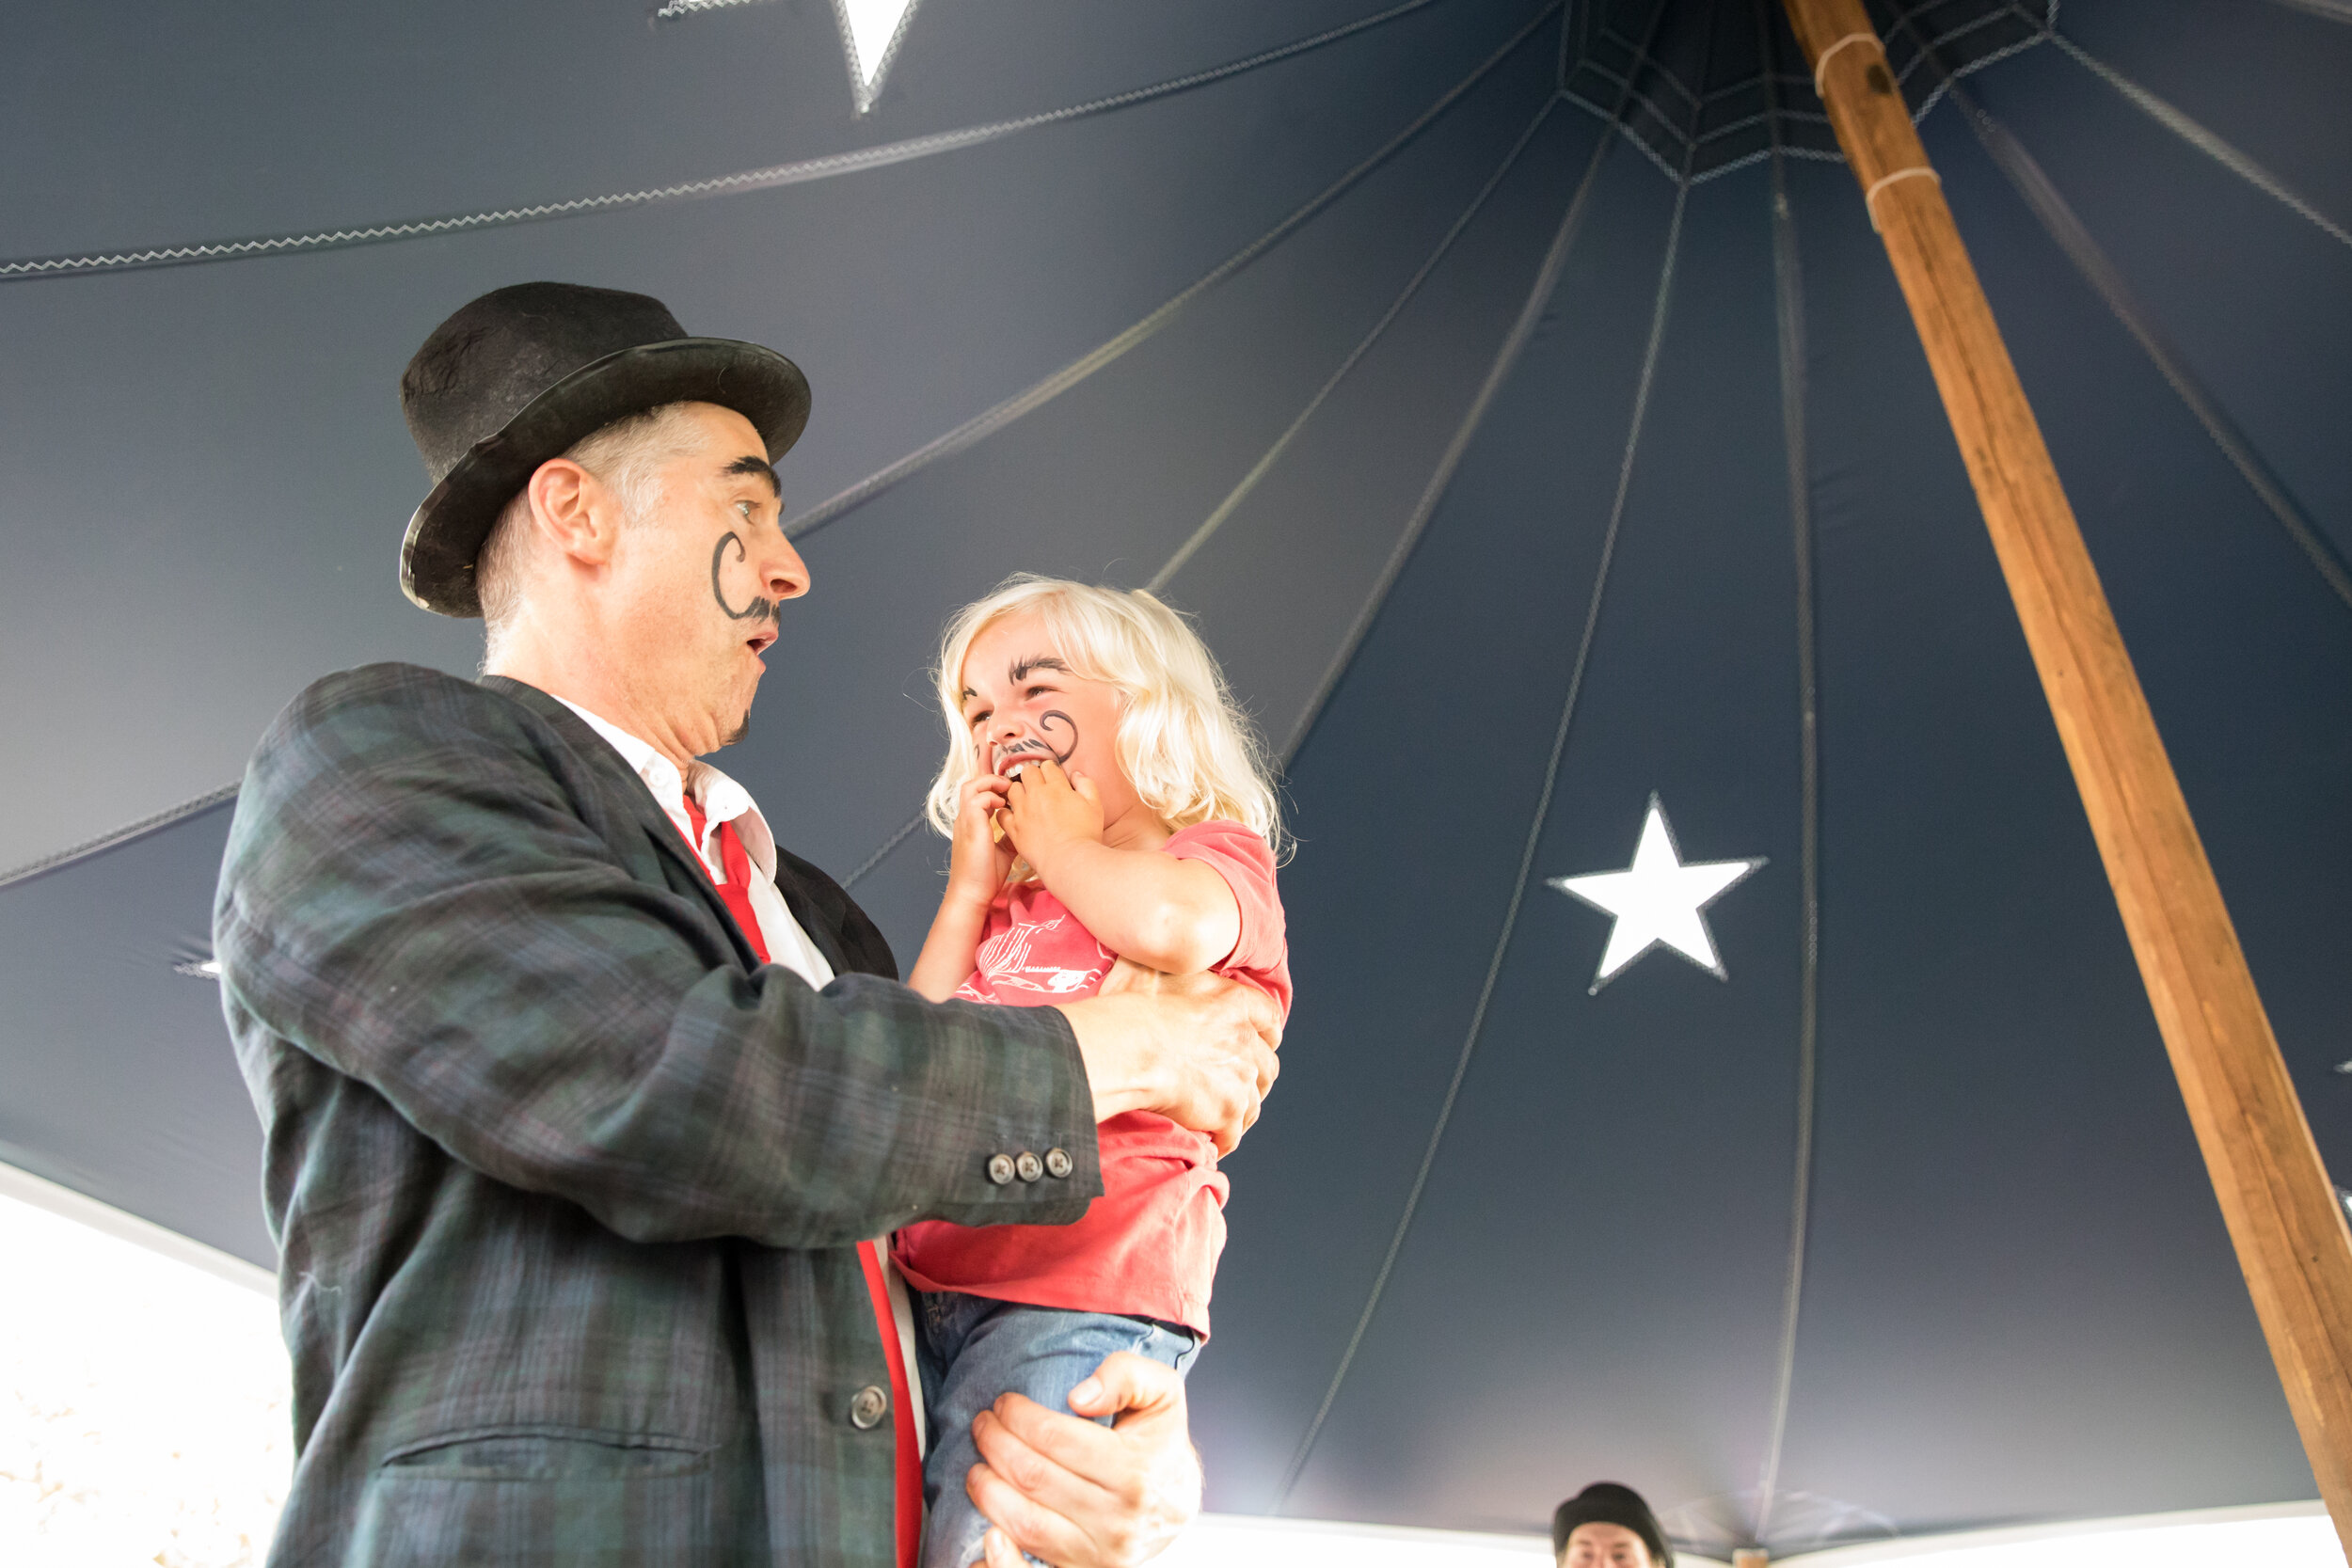 Scott Barrow performs in a show under the Big Top at a free Cinema Circus. Photo by Maria Thibodeau.